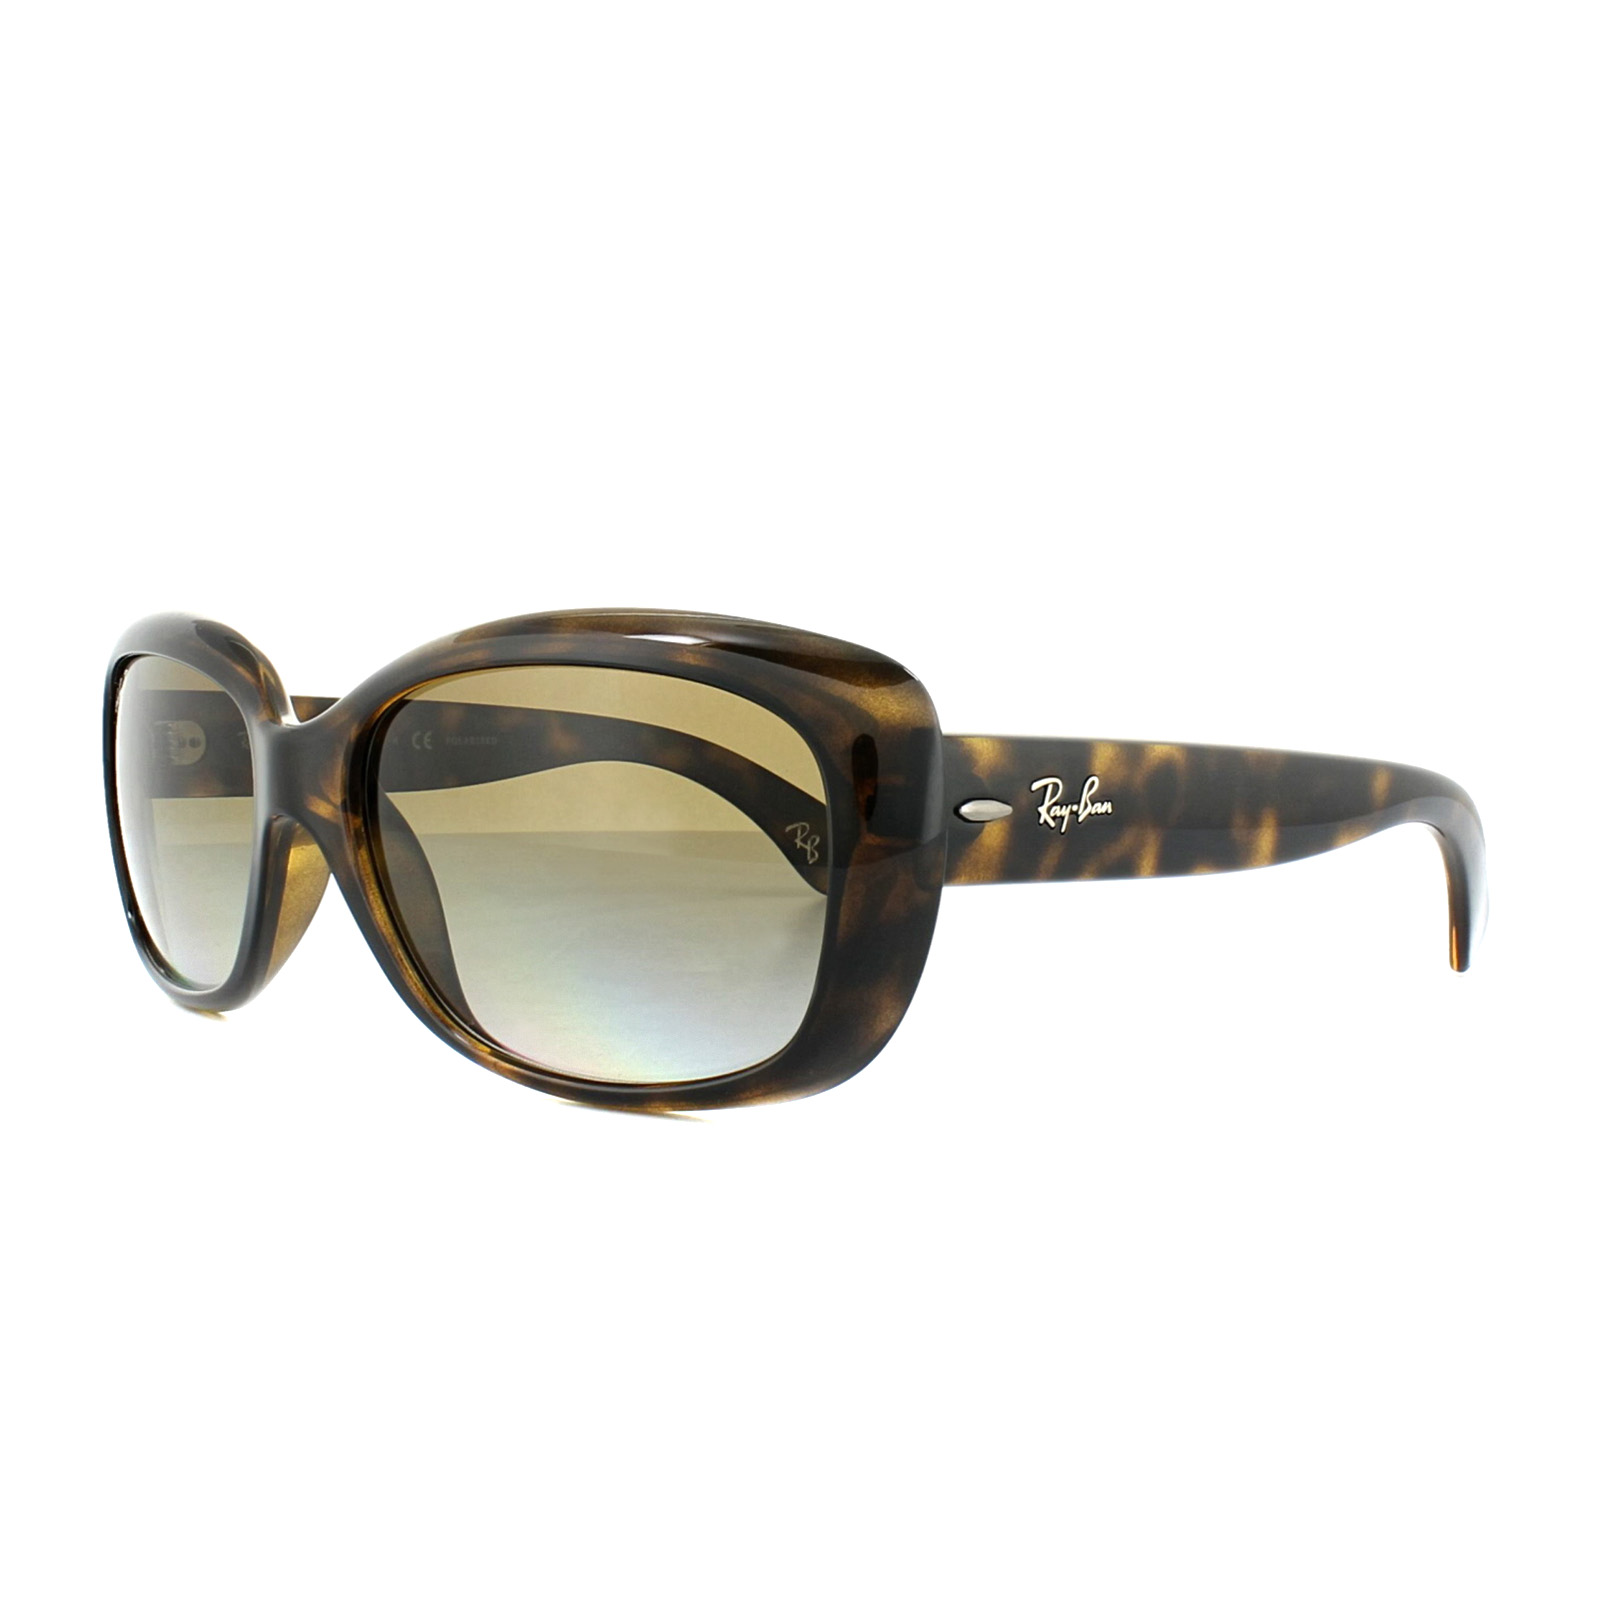 031ecb94bc Sentinel Ray-Ban Sunglasses Jackie Ohh 4101 710 T5 Tortoise Brown Gradient  Polarized